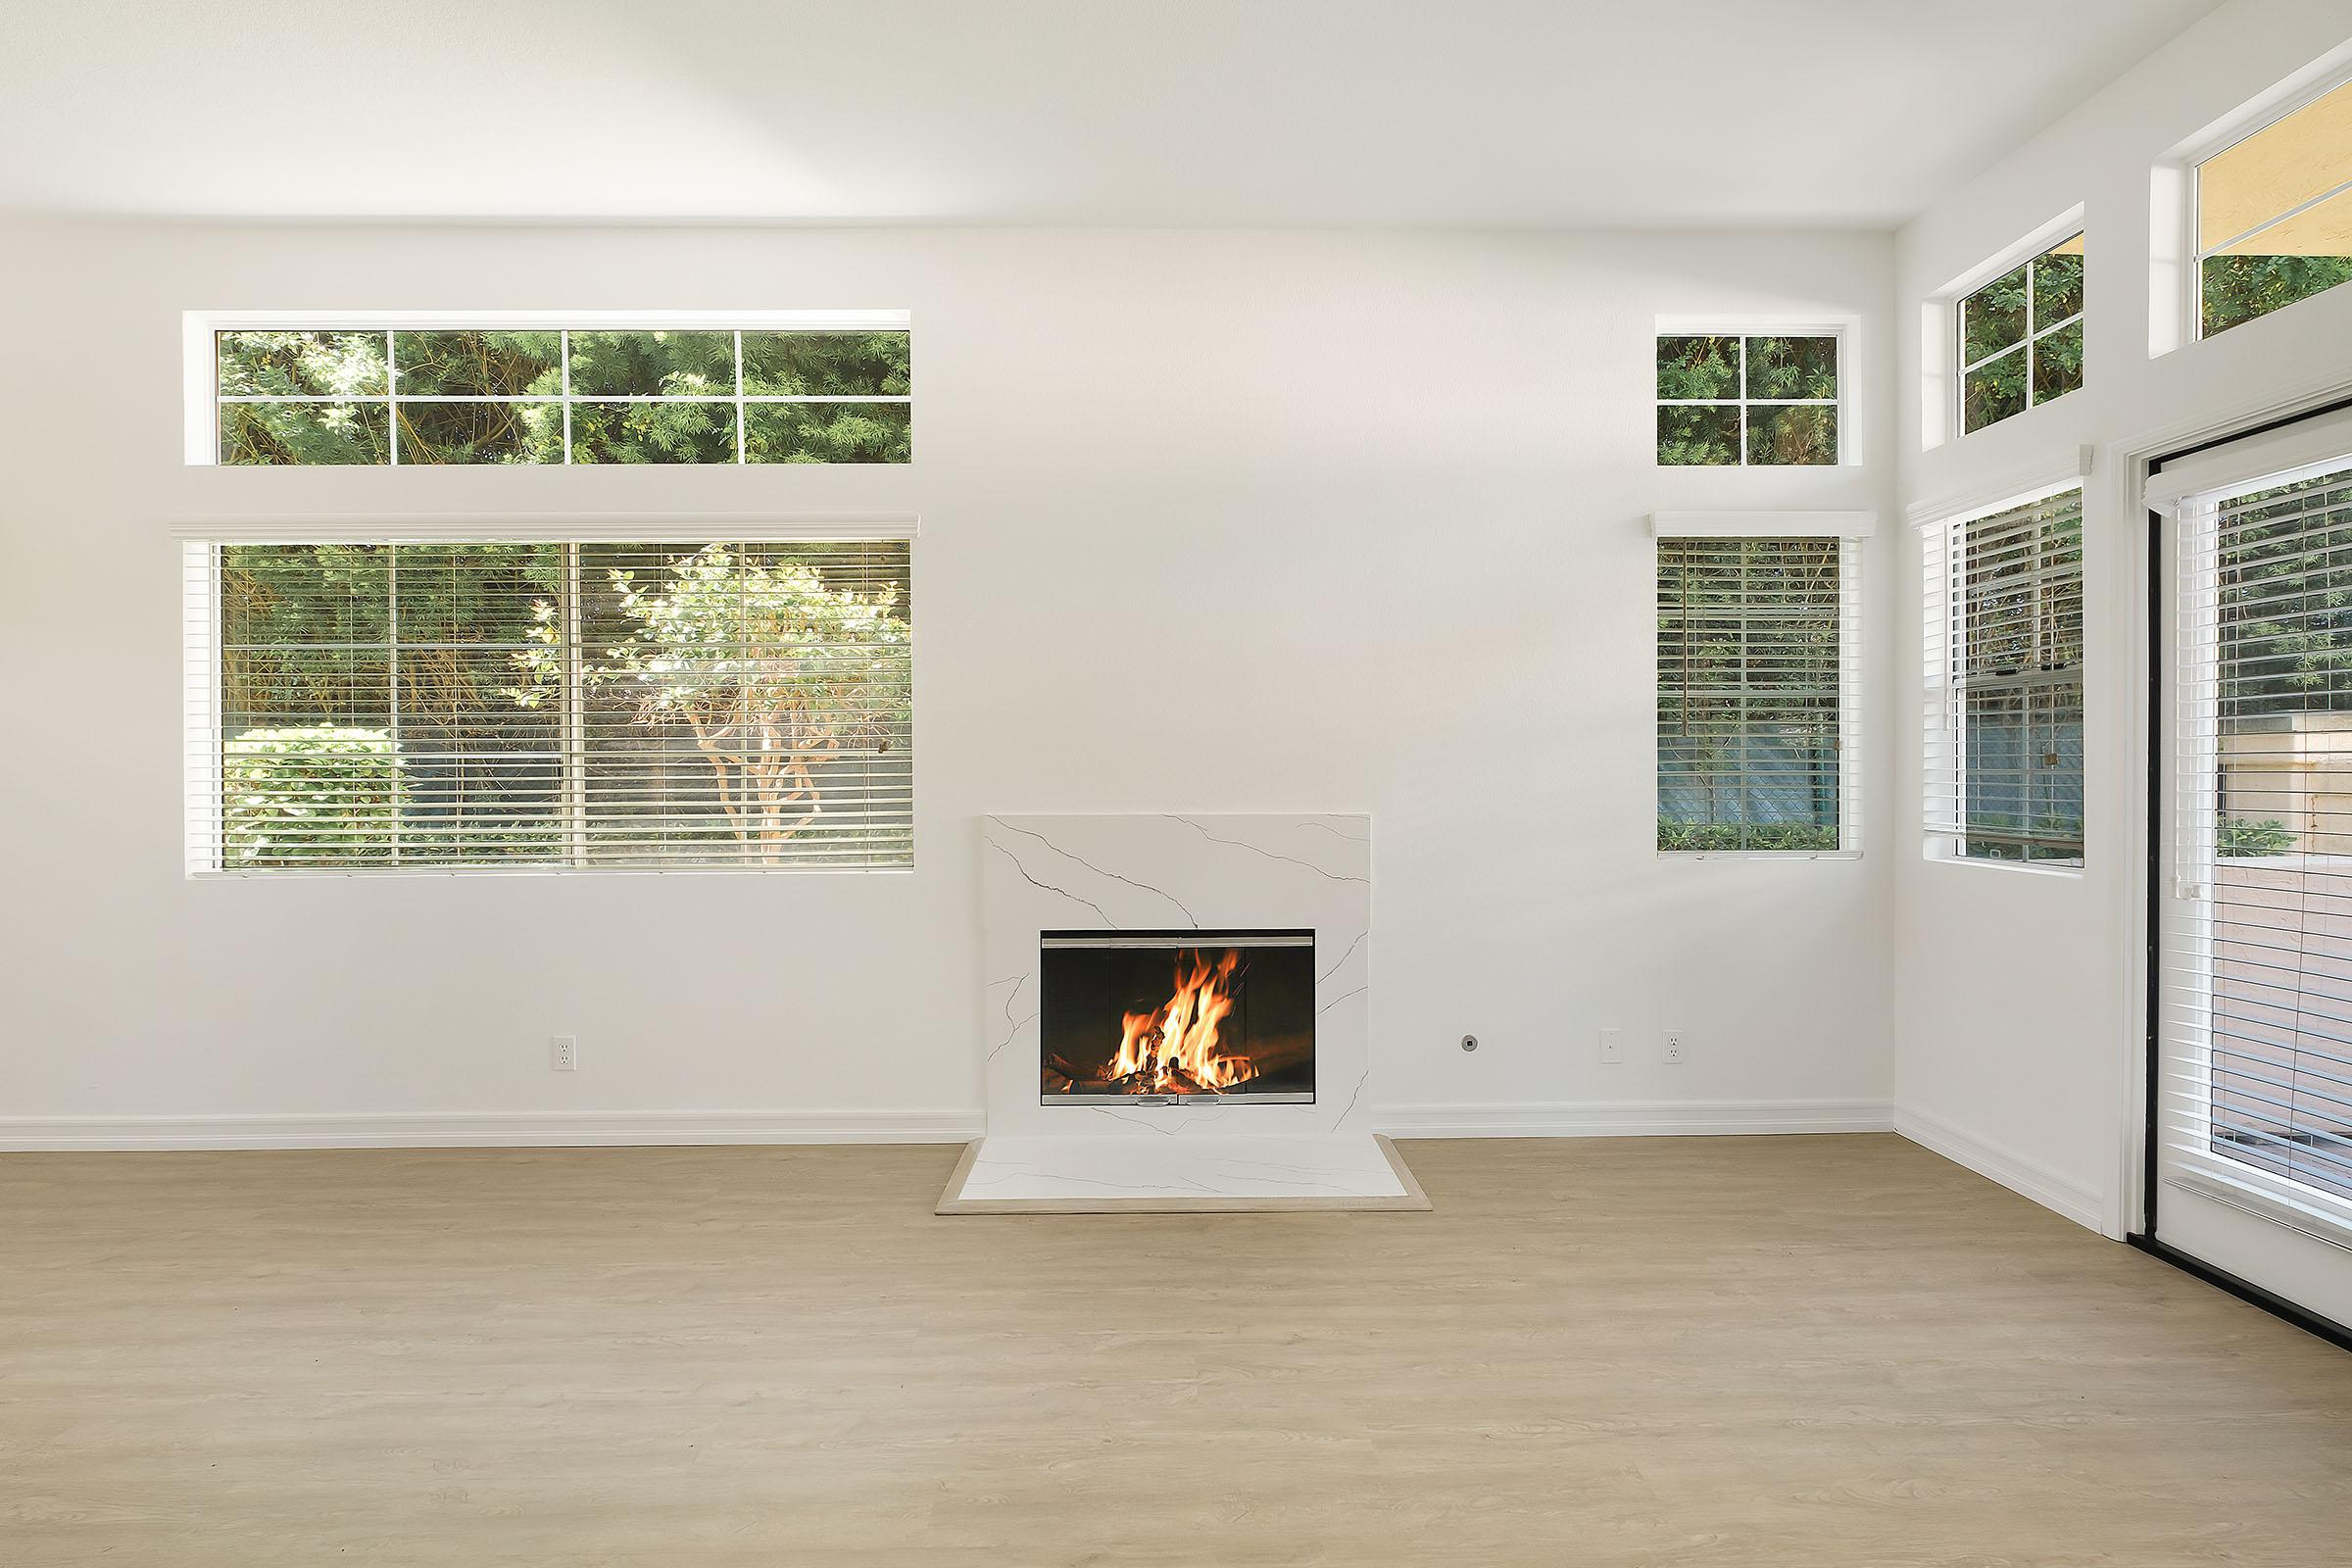 a living room with a fireplace and a large window